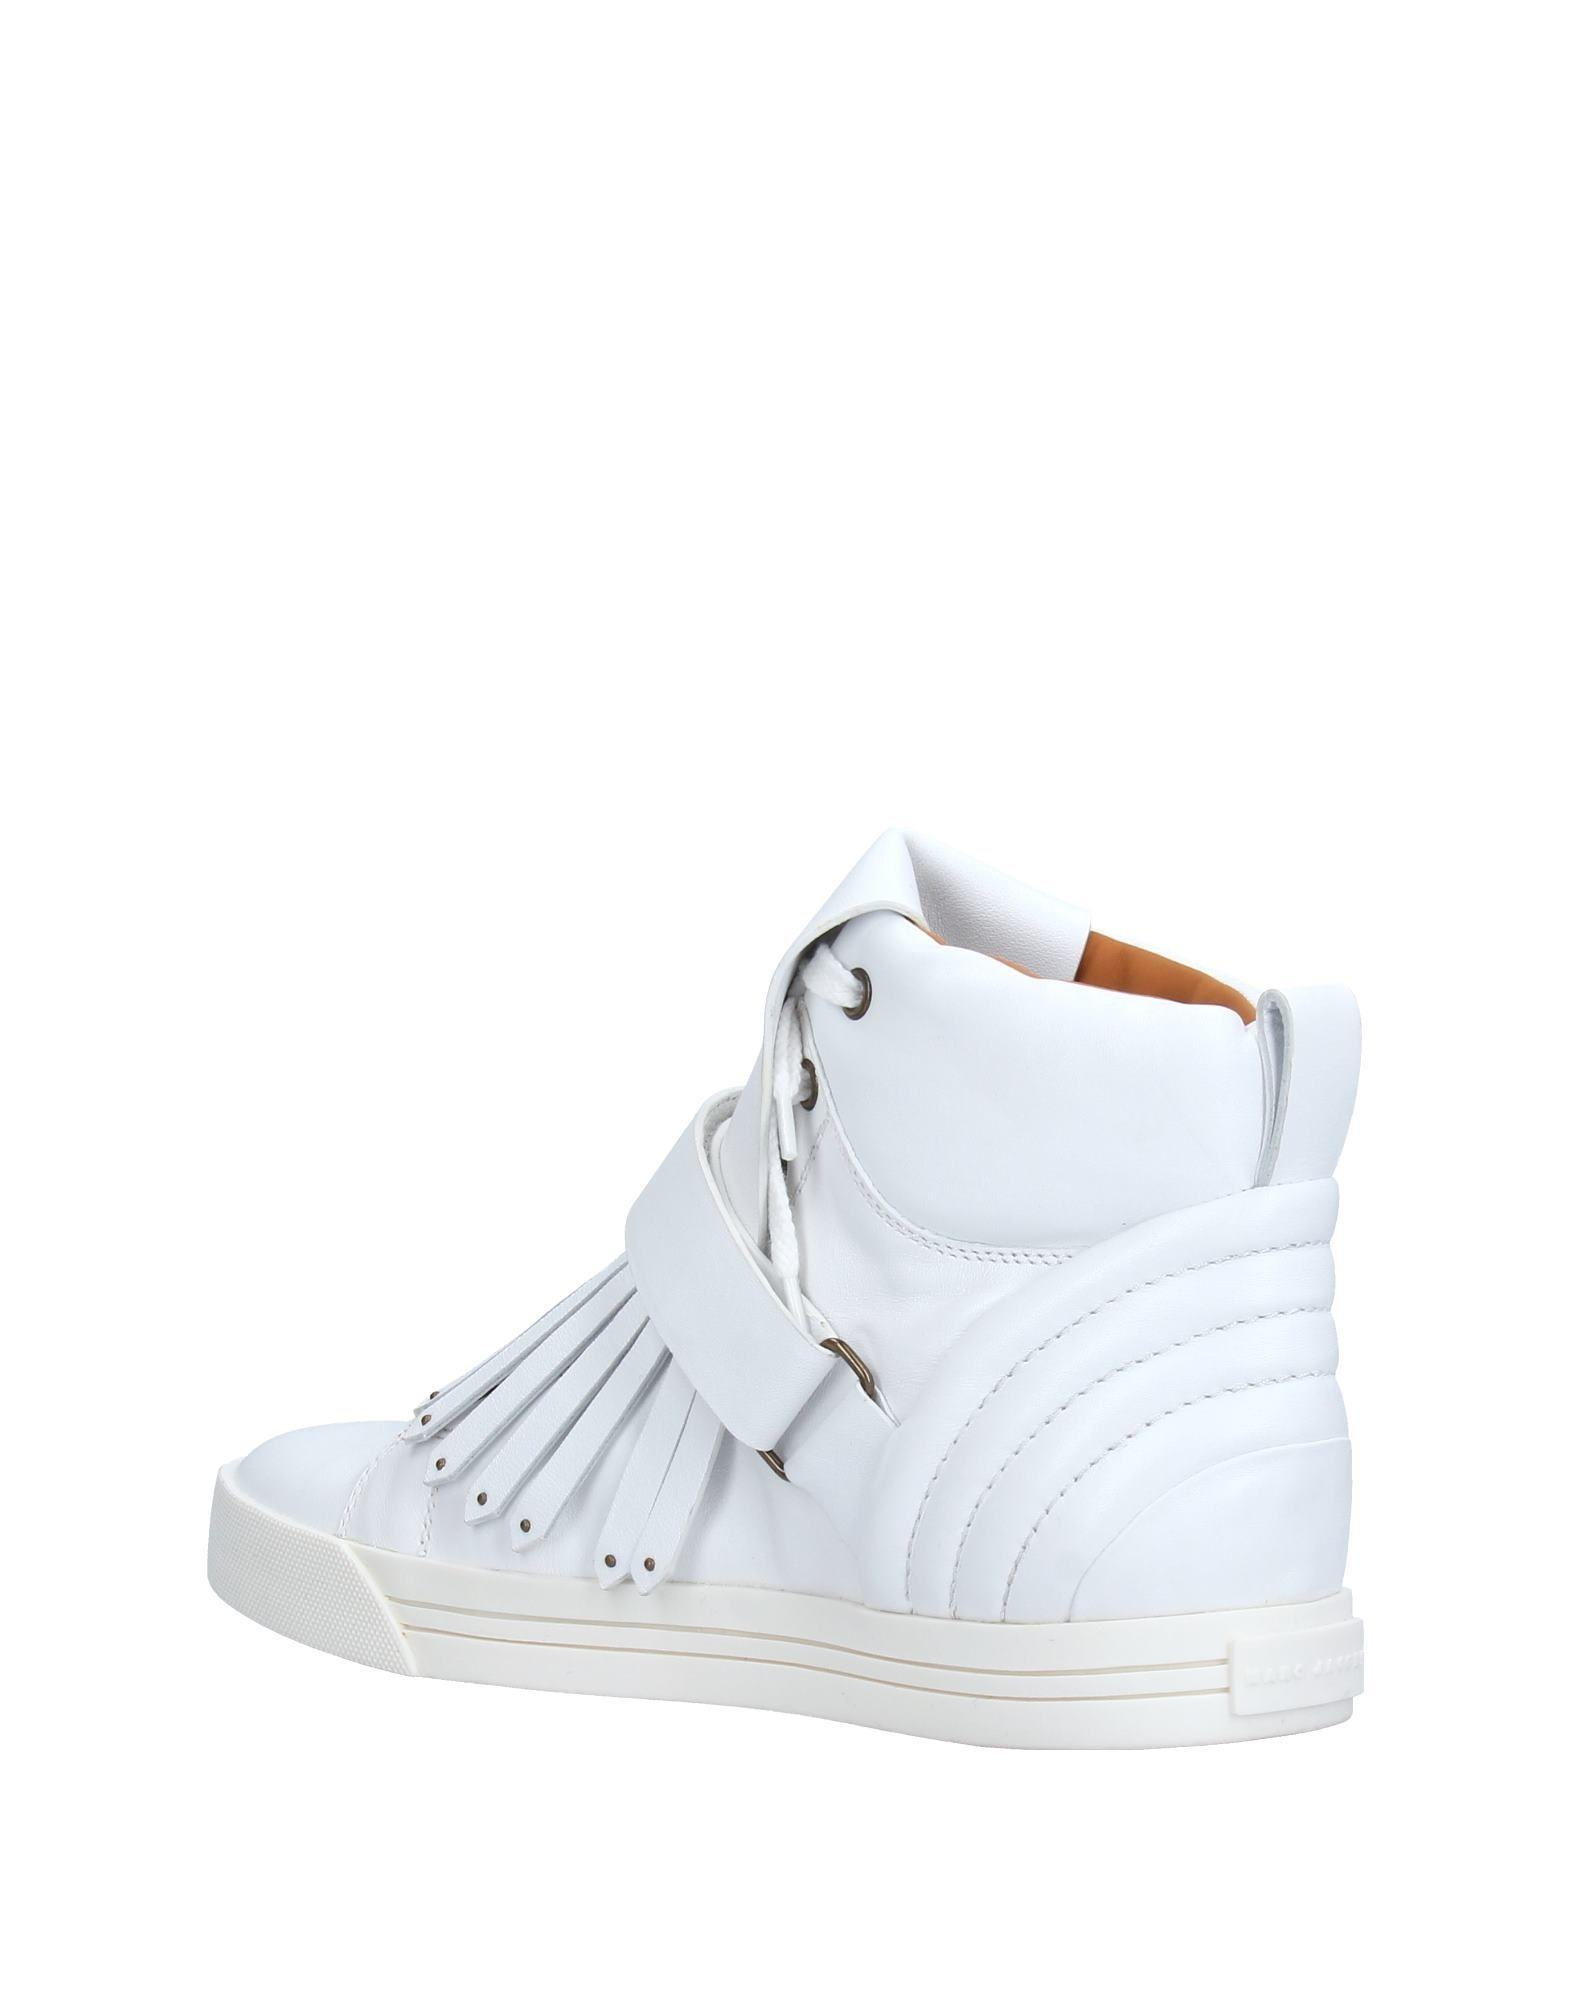 Marc Jacobs Leather High-tops & Sneakers in White